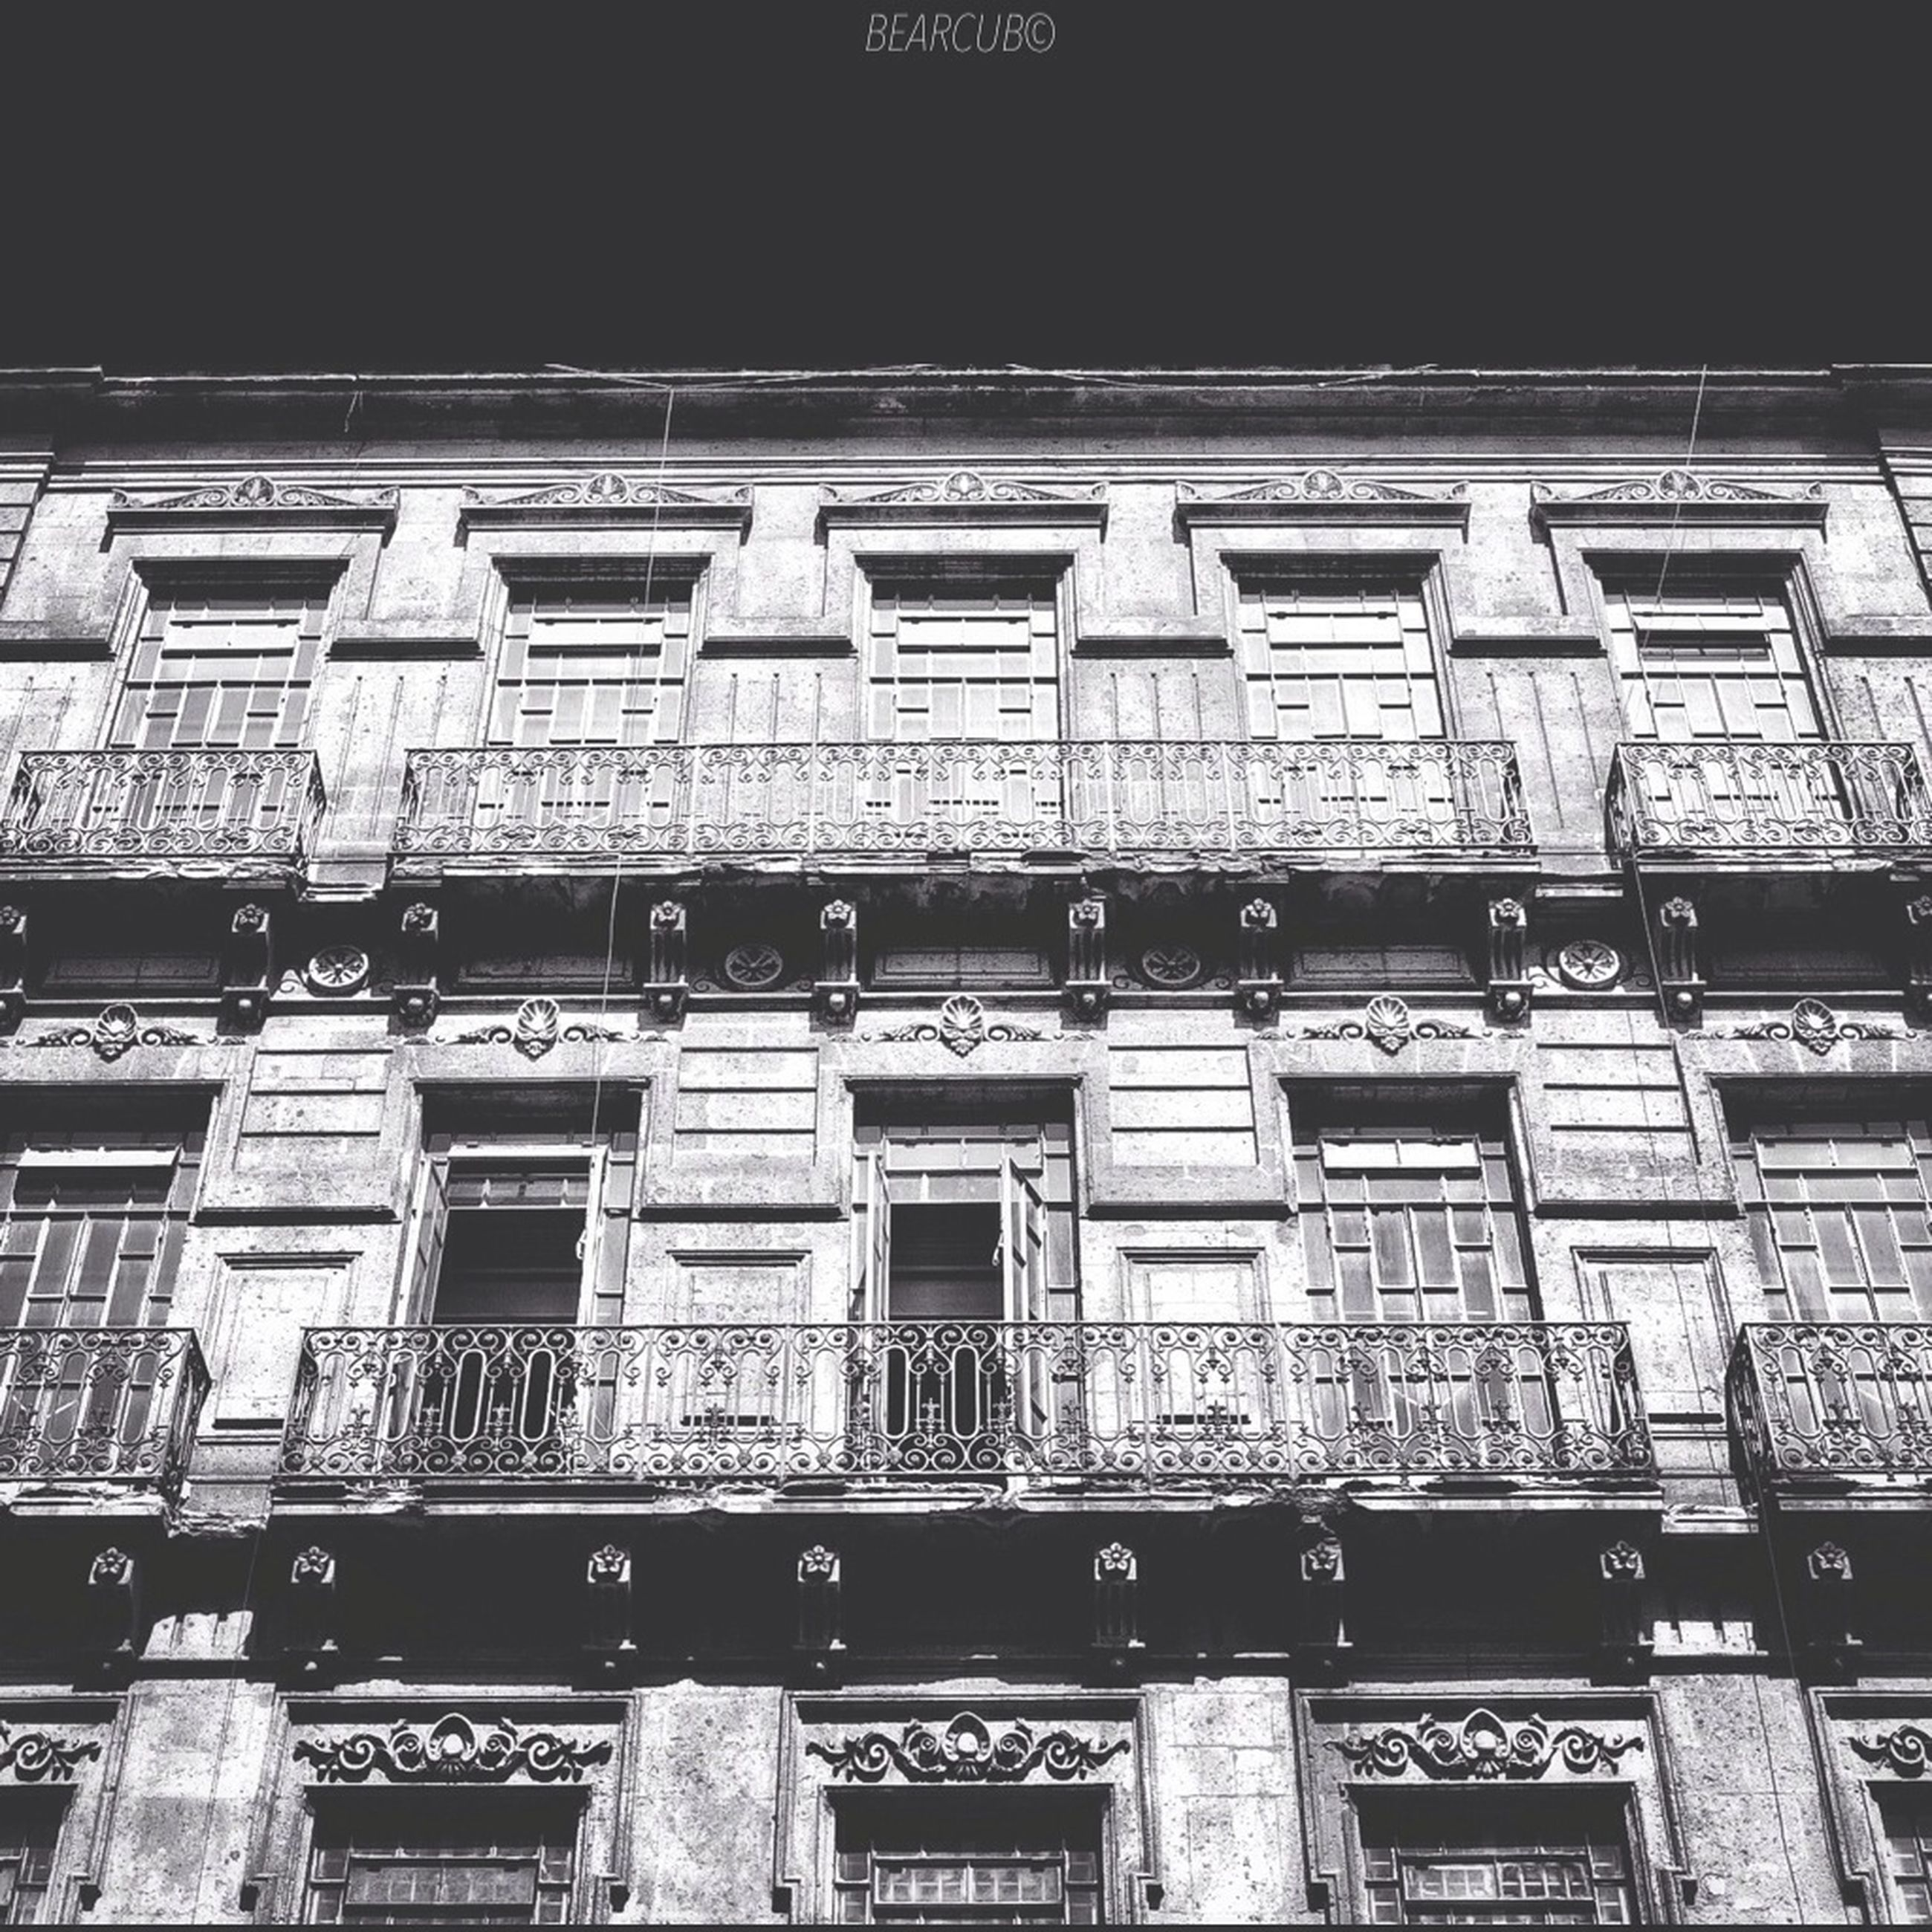 architecture, built structure, building exterior, low angle view, text, window, western script, building, facade, city, outdoors, in a row, side by side, no people, day, communication, repetition, architectural feature, art and craft, non-western script